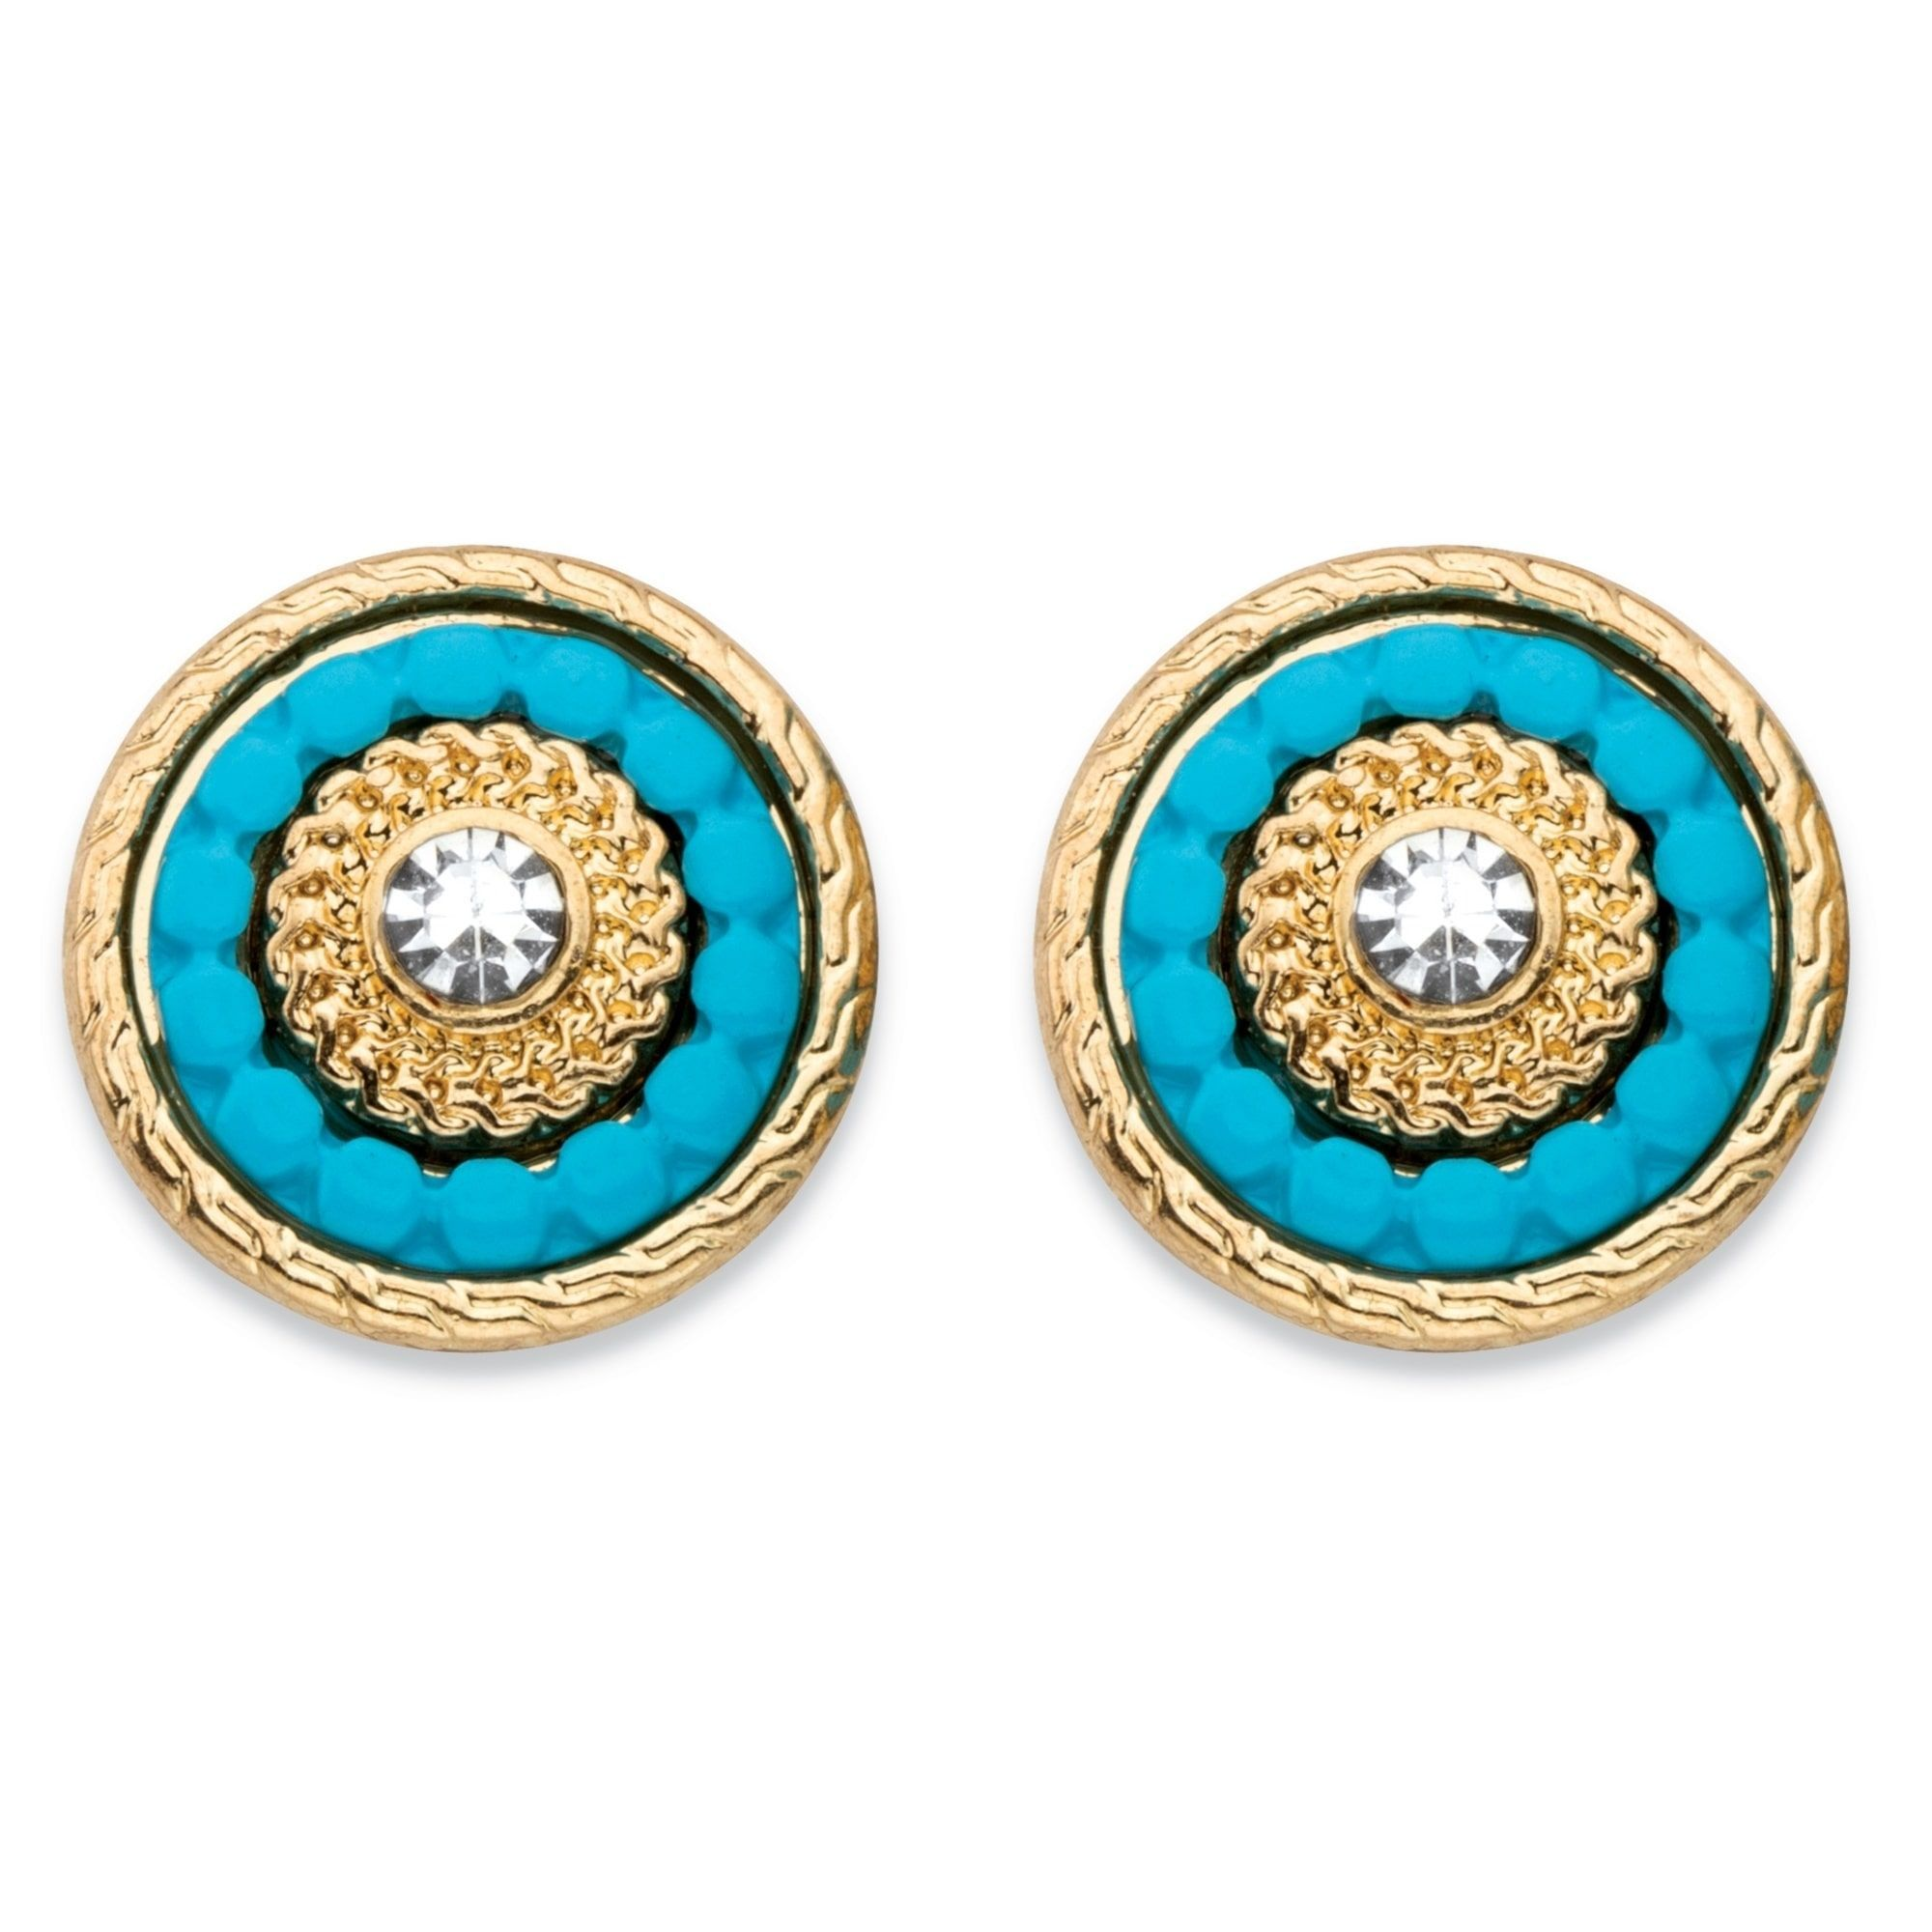 80df9fcc4 Round Crystal and Simulated Turquoise 14k Gold-Plated Beaded Halo Button  Earrings Bold Fashion